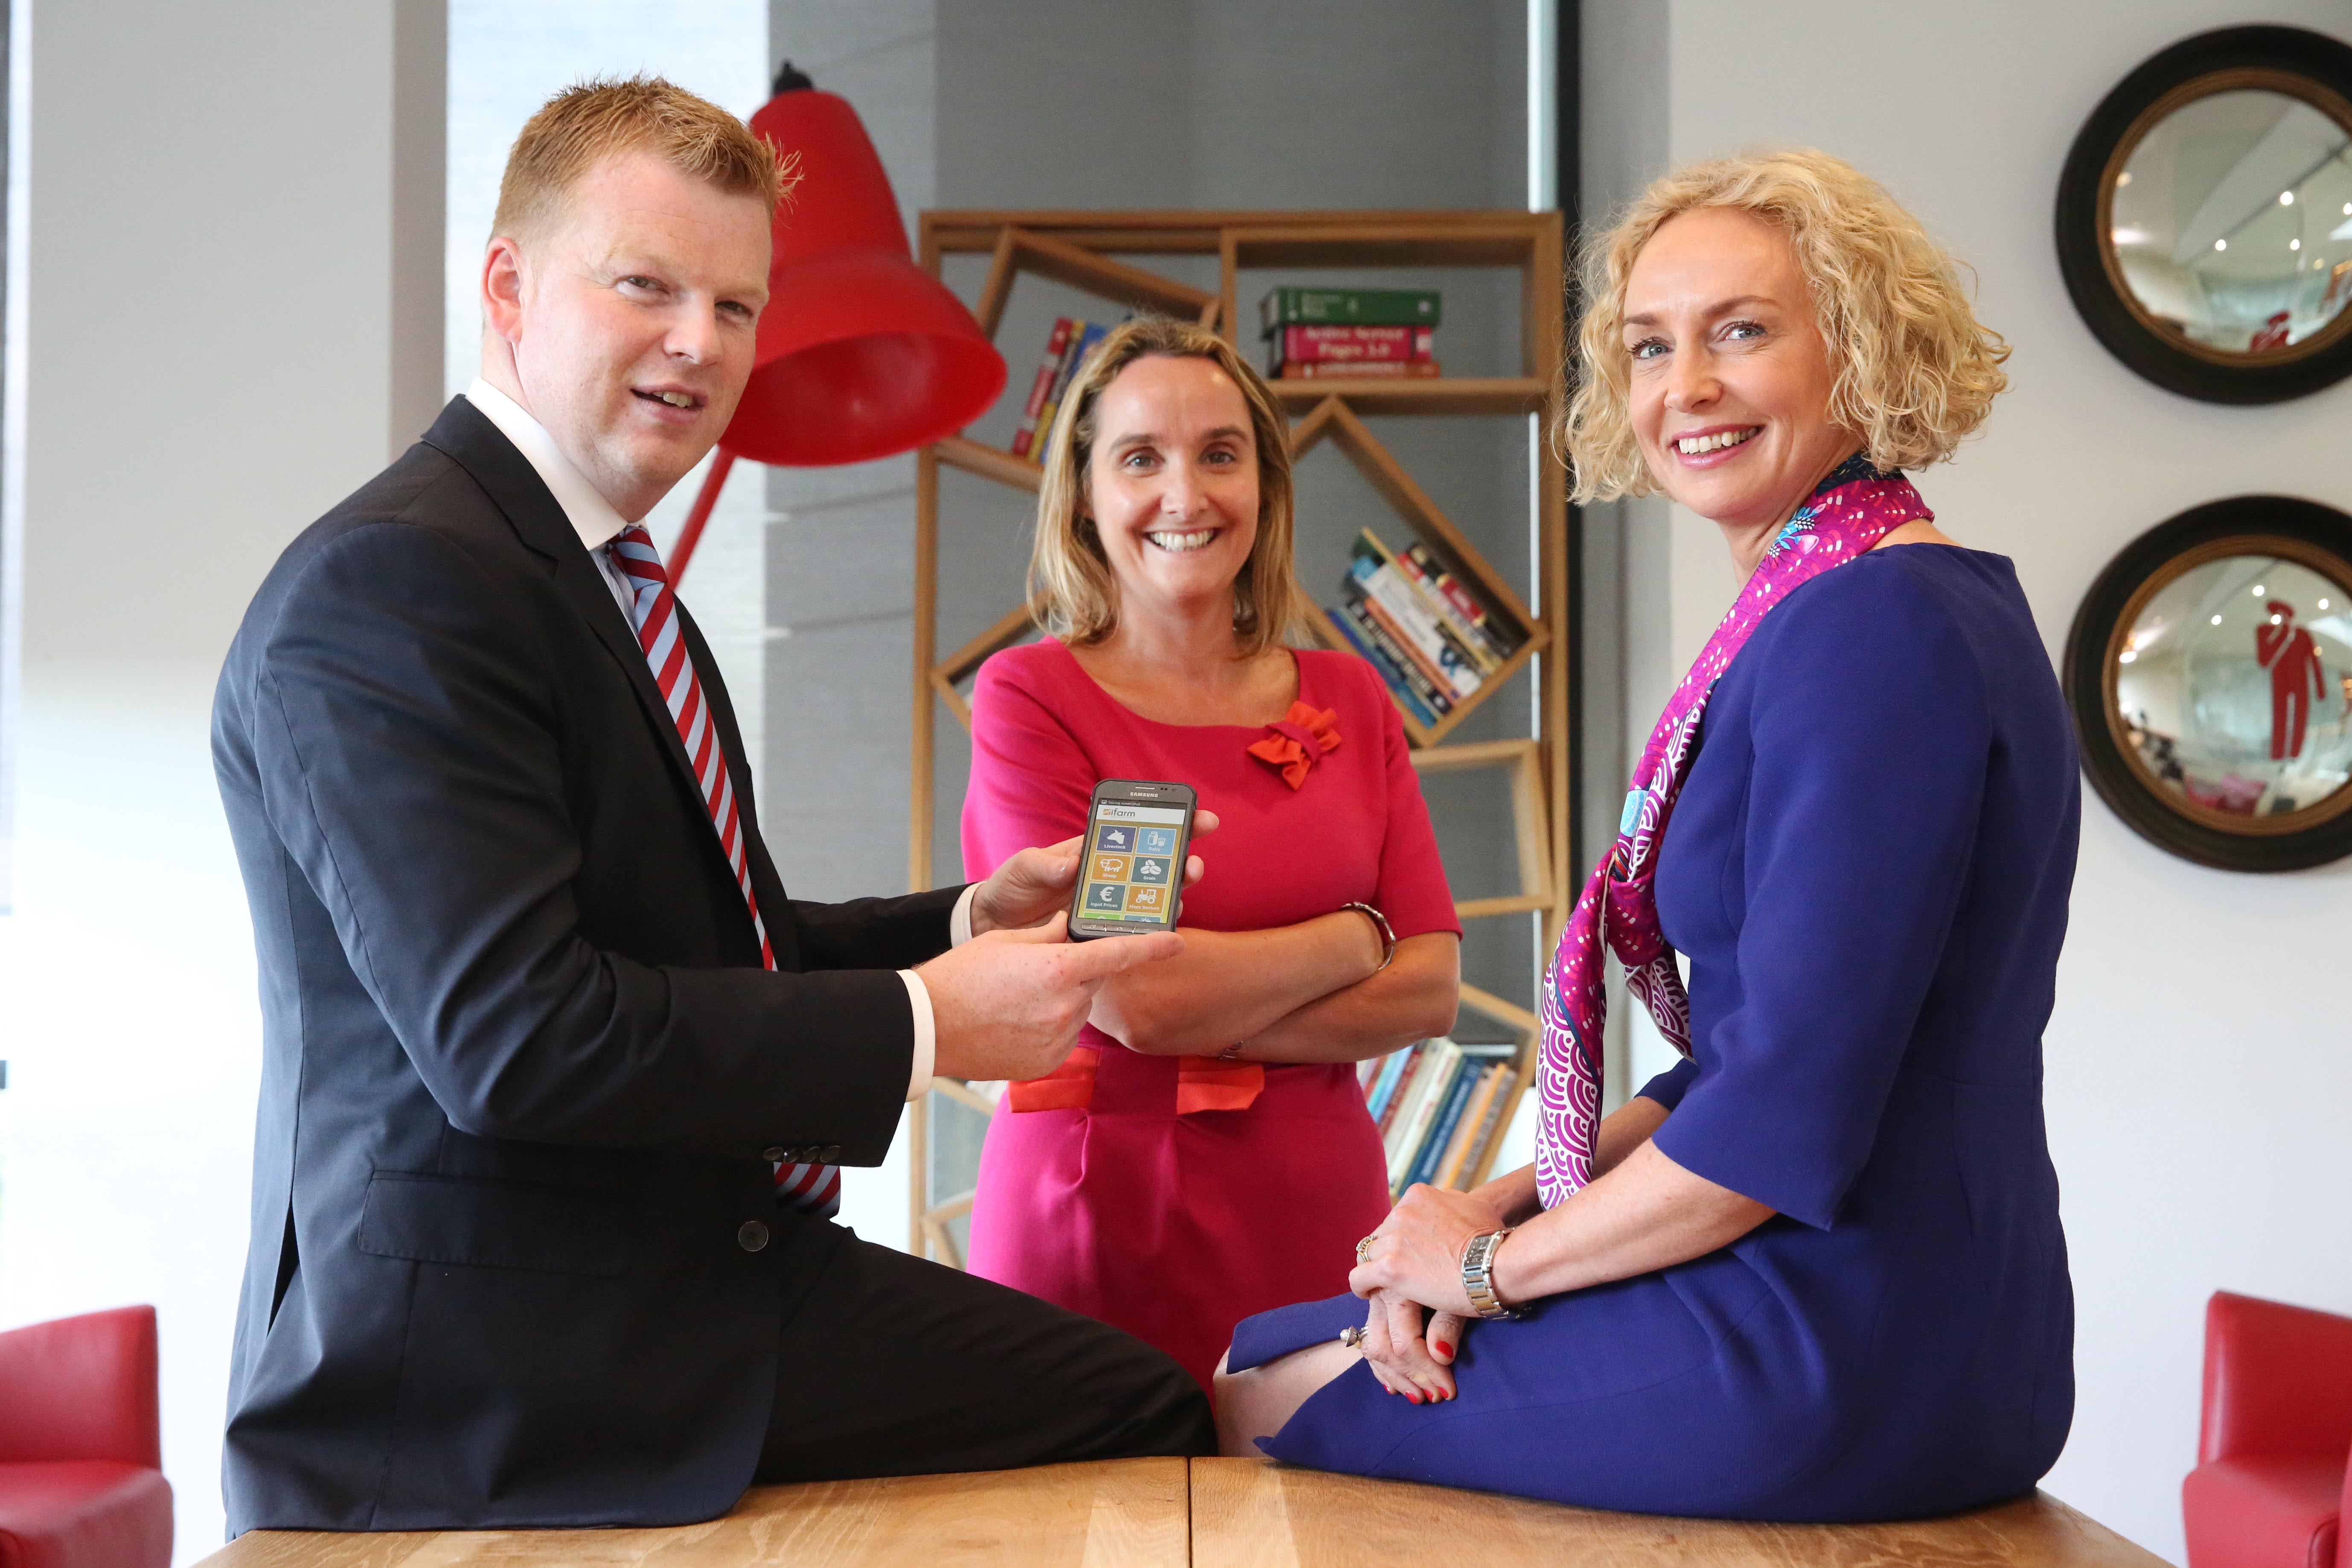 James Kelly, IFA Director of Organisation; Anne Sheehan, Director of Enterprise at Vodafone; and Anne O'Leary, Vodafone CEO